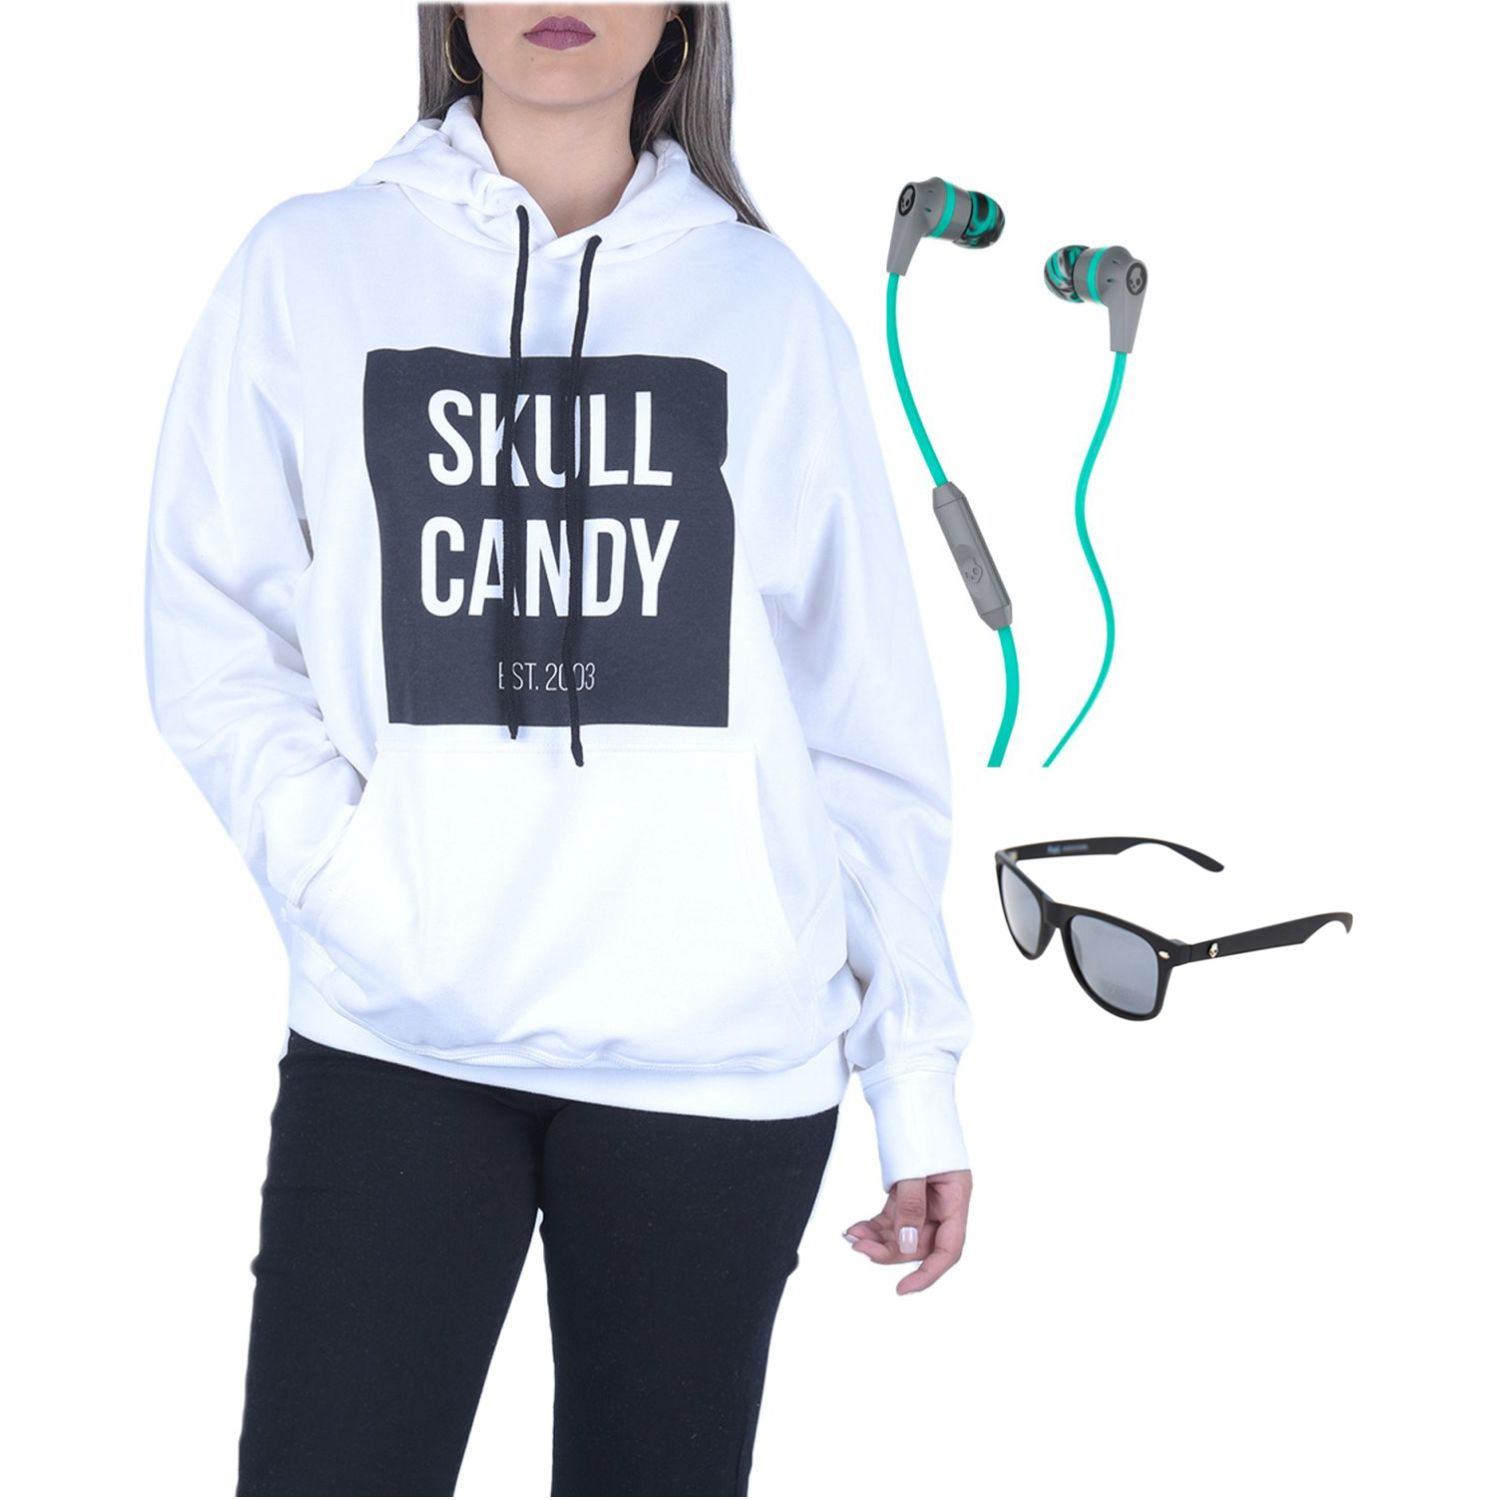 Skullcandy hoodie square blan+inkd wire+lenteskyd Gris / menta Hoodies y Sweaters Fashion